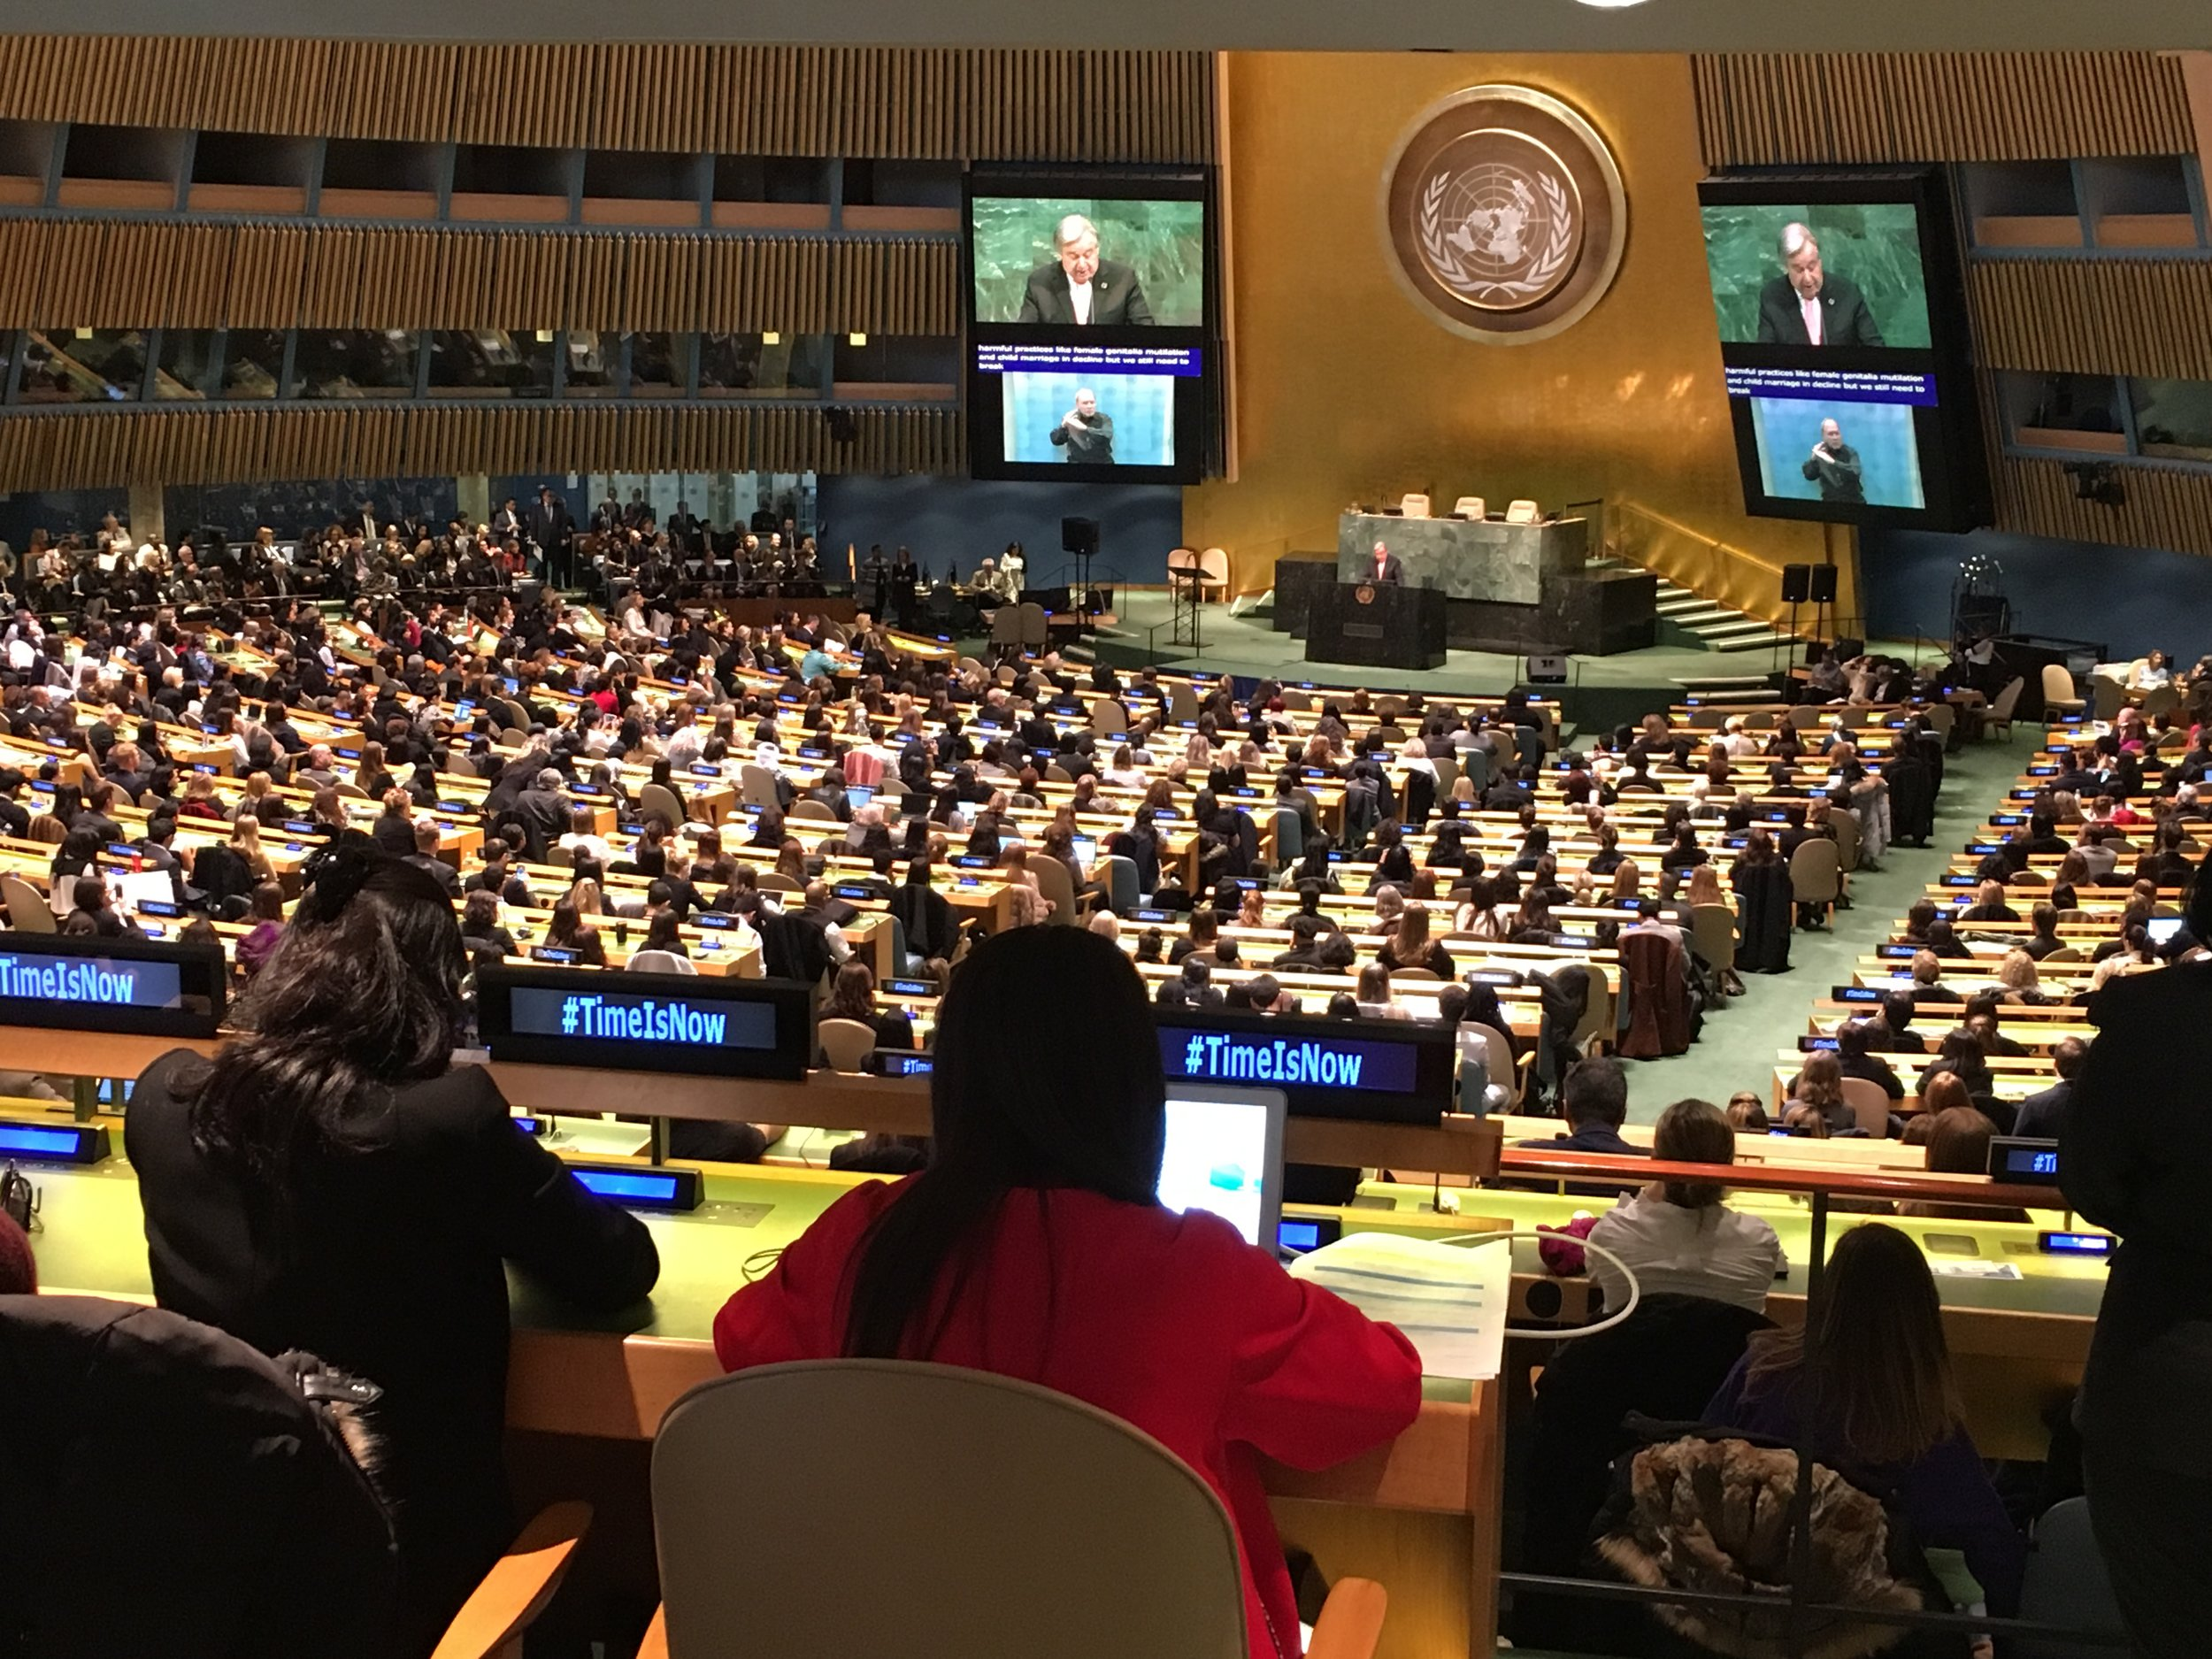 UN Secretary General António Guterres addressing the importance of IWD at the General Assembly in New York on March 8th 2018. Picture: Ludovica Martella